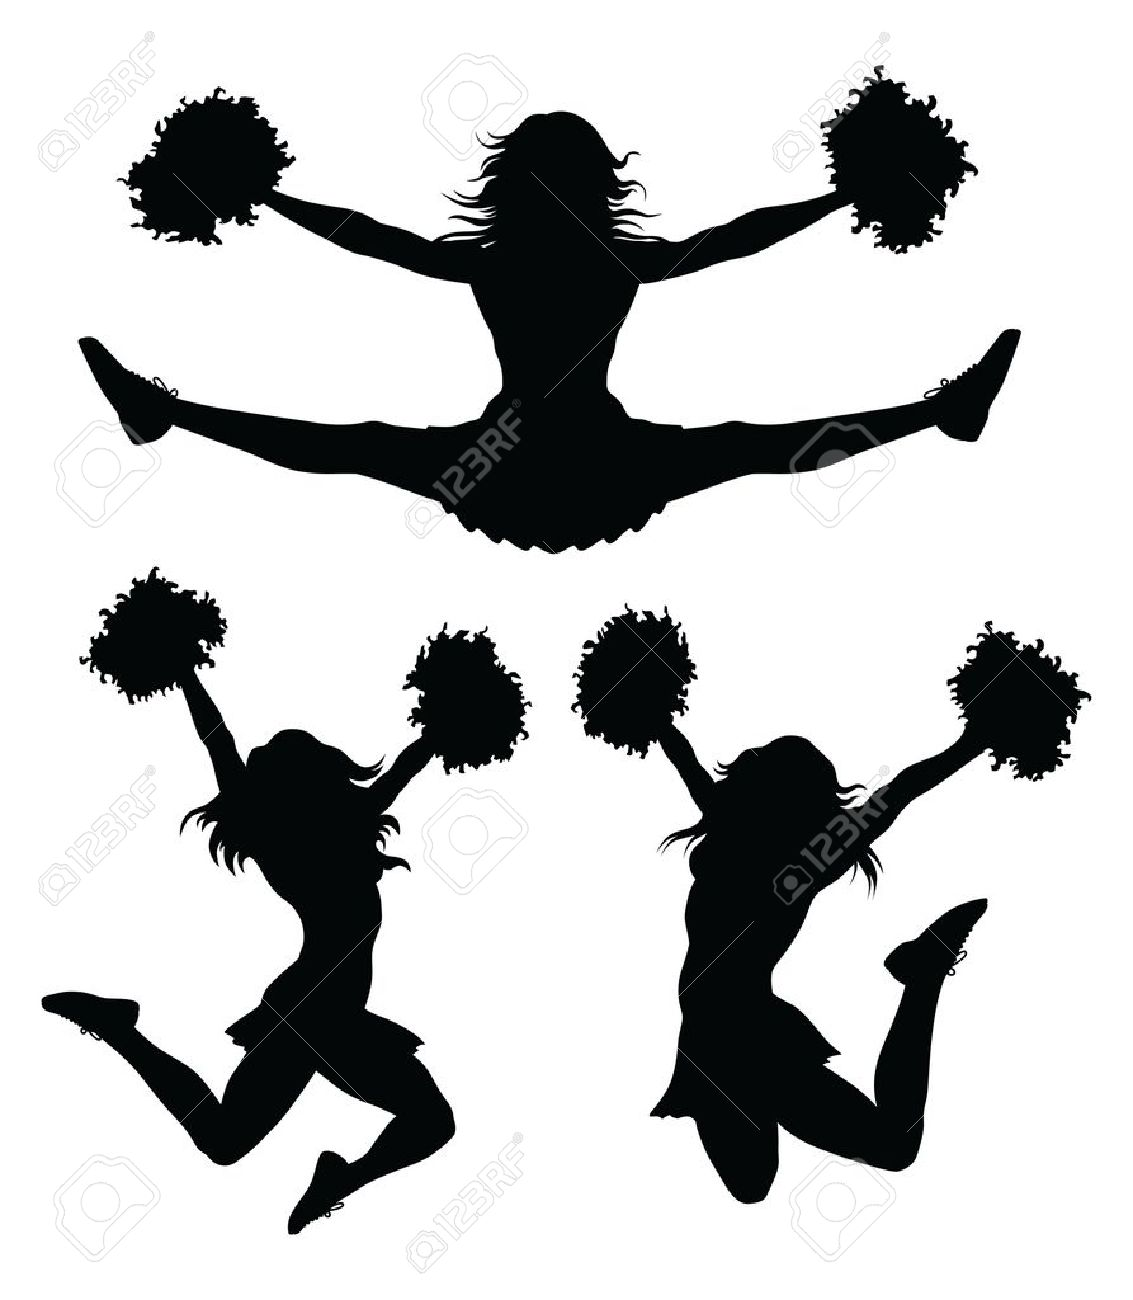 Cheer Jumps Silhouette Clipart-Cheer Jumps Silhouette Clipart-2